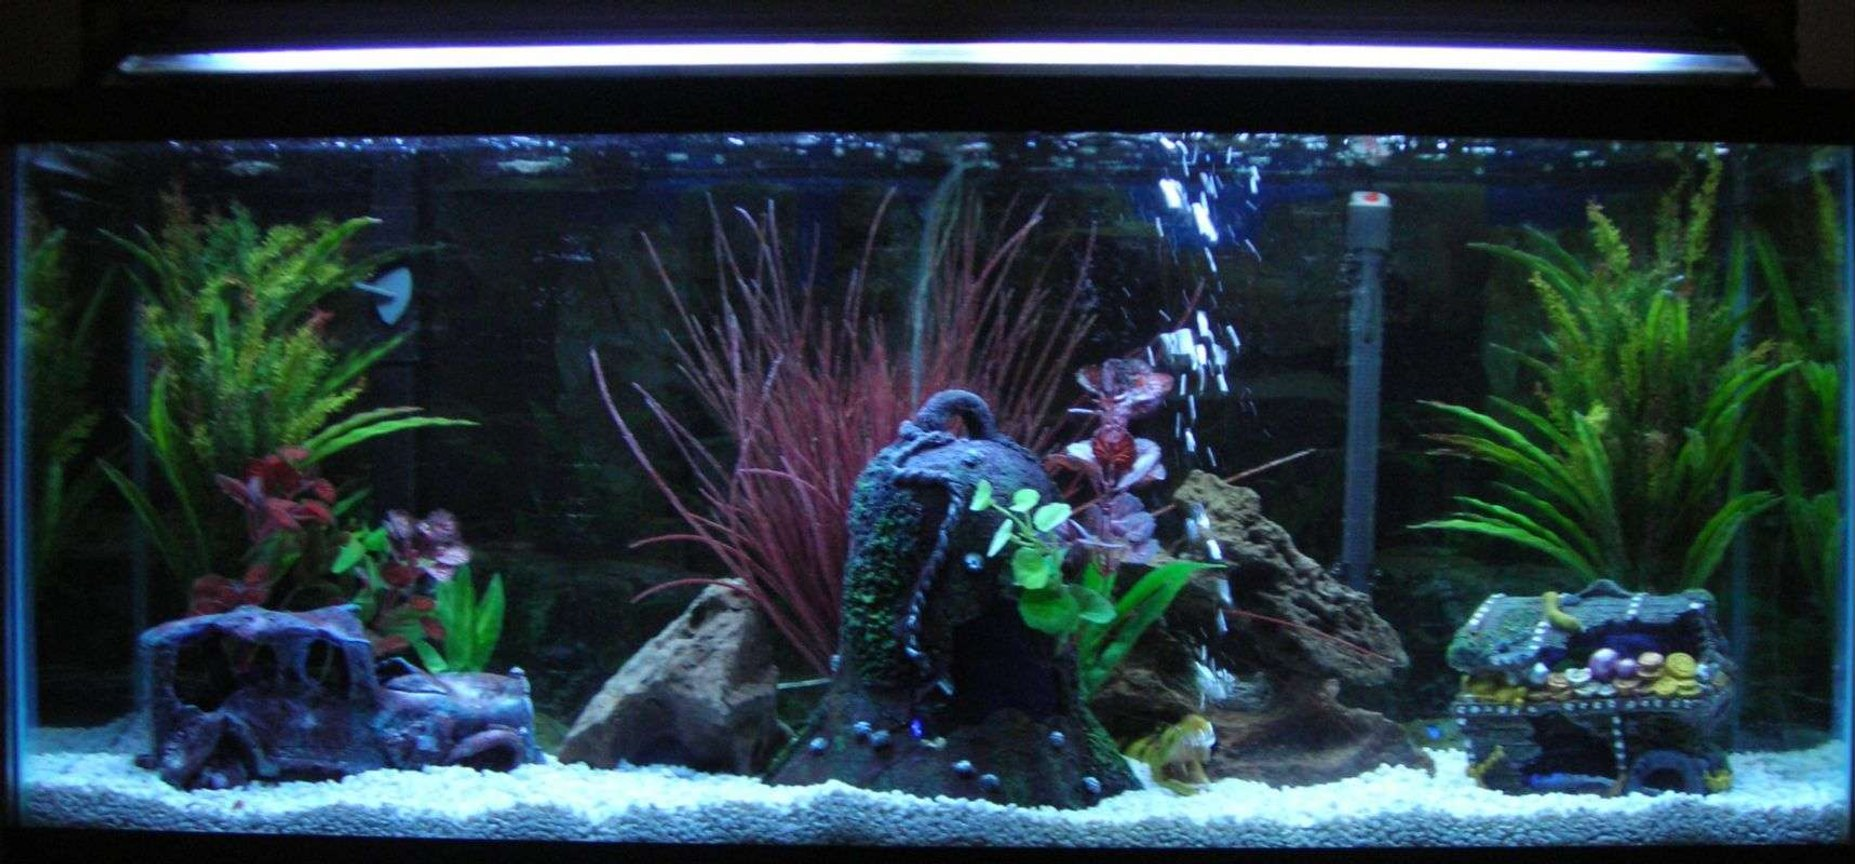 55 gallons freshwater fish tank (mostly fish and non-living decorations) - my new design